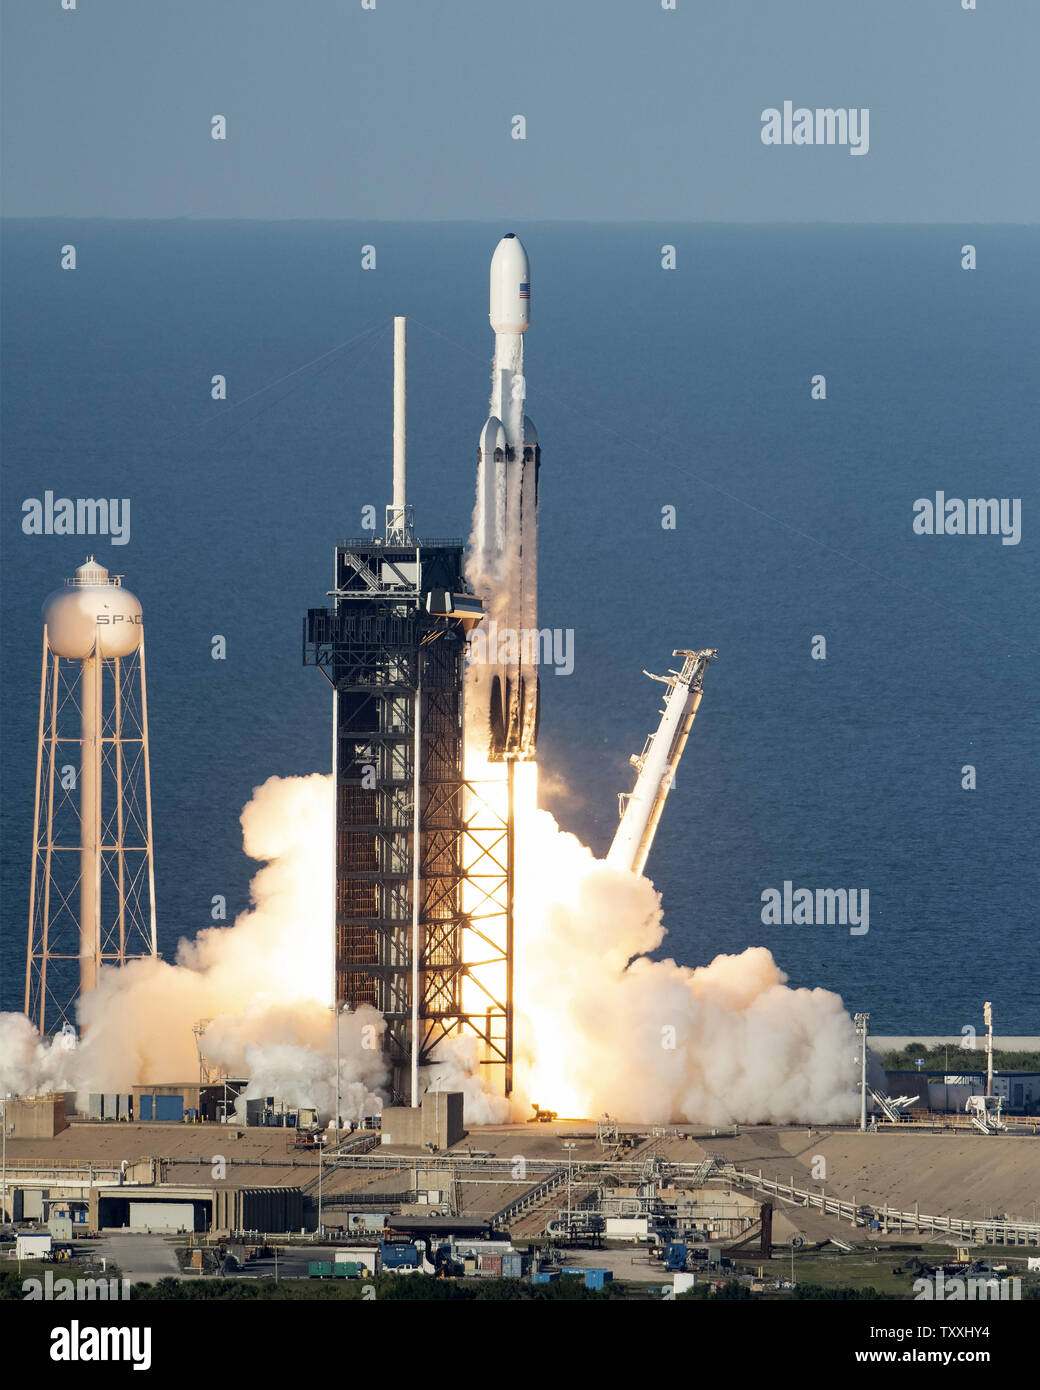 A Spacex Falcon 9 Heavy Rocket Launches At 6 35 Pm From Complex 39a At The Kennedy Space Center Florida On April 11 2019 This Is The First Commercial Launch Of The Heavy